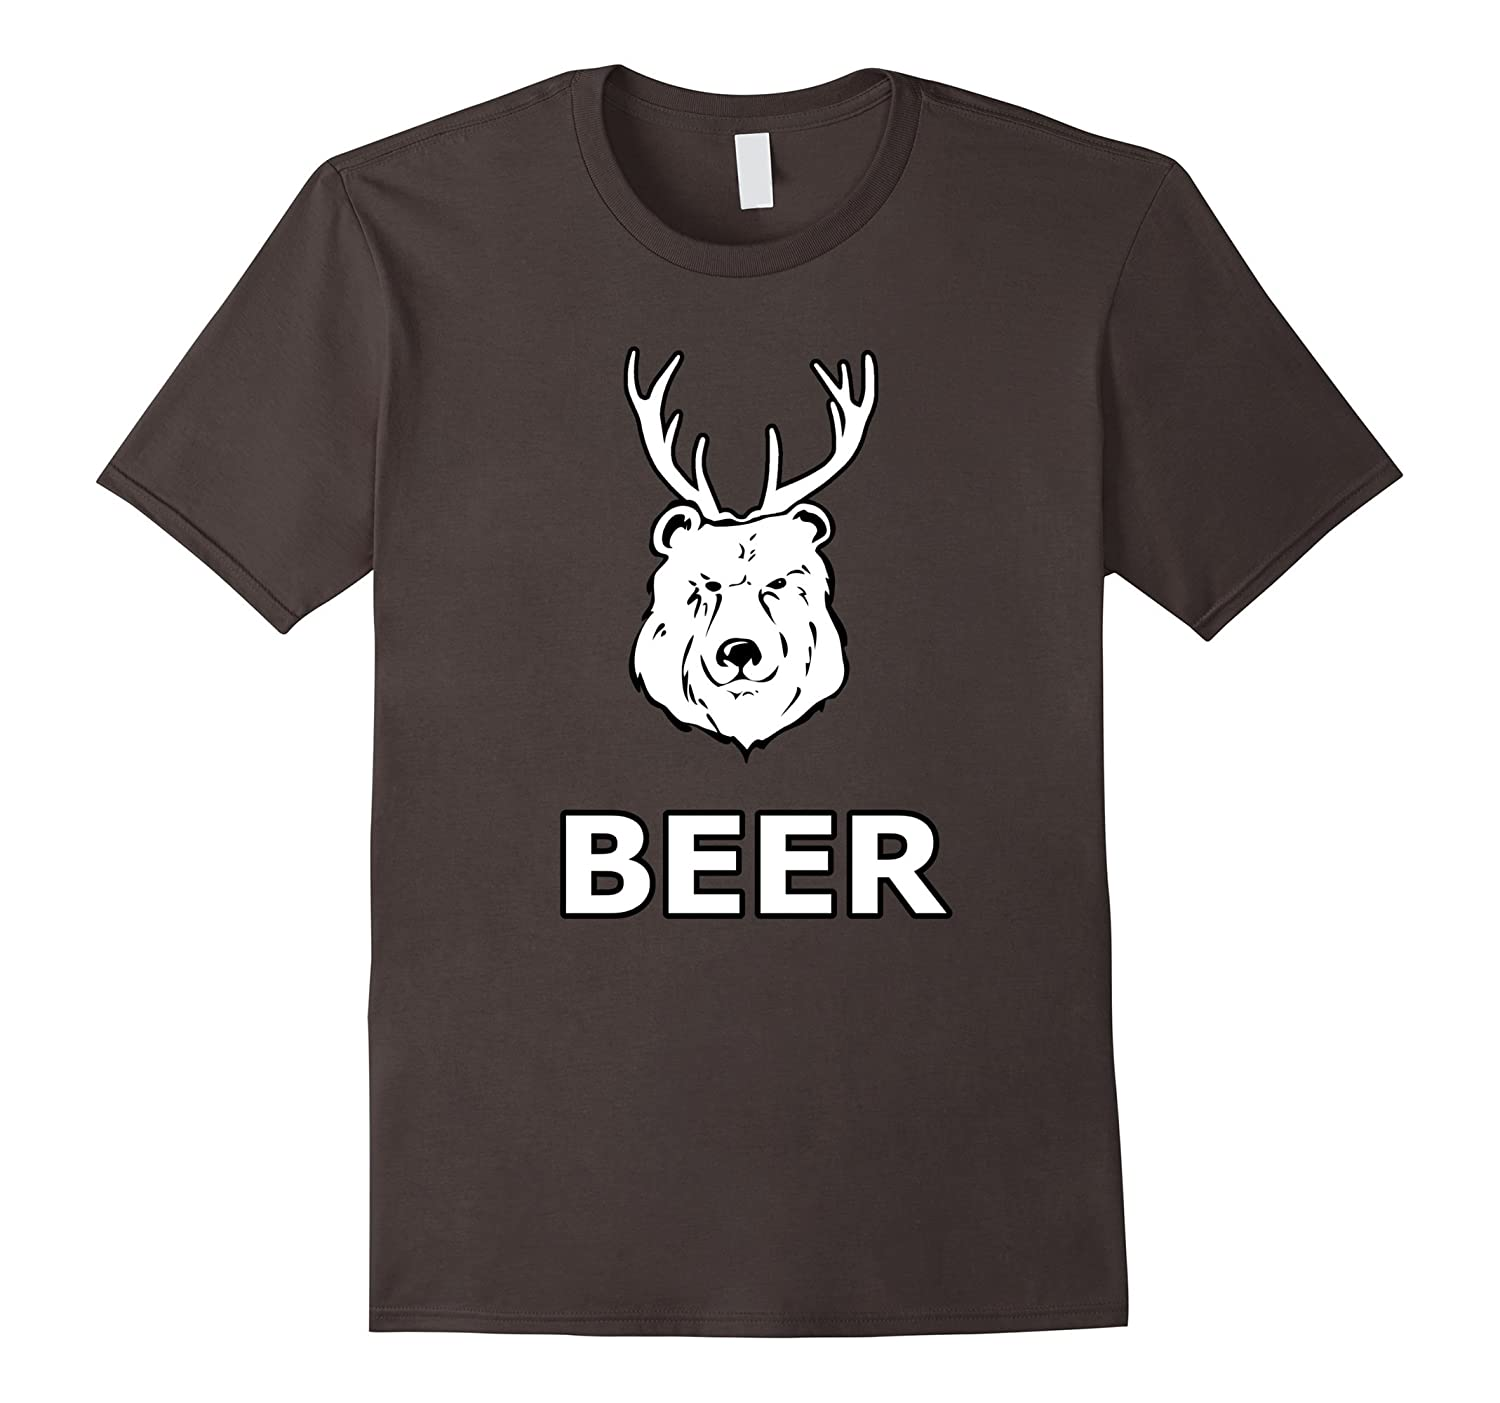 Bear + Deer = Beer, Funny outdoors shirt-TH